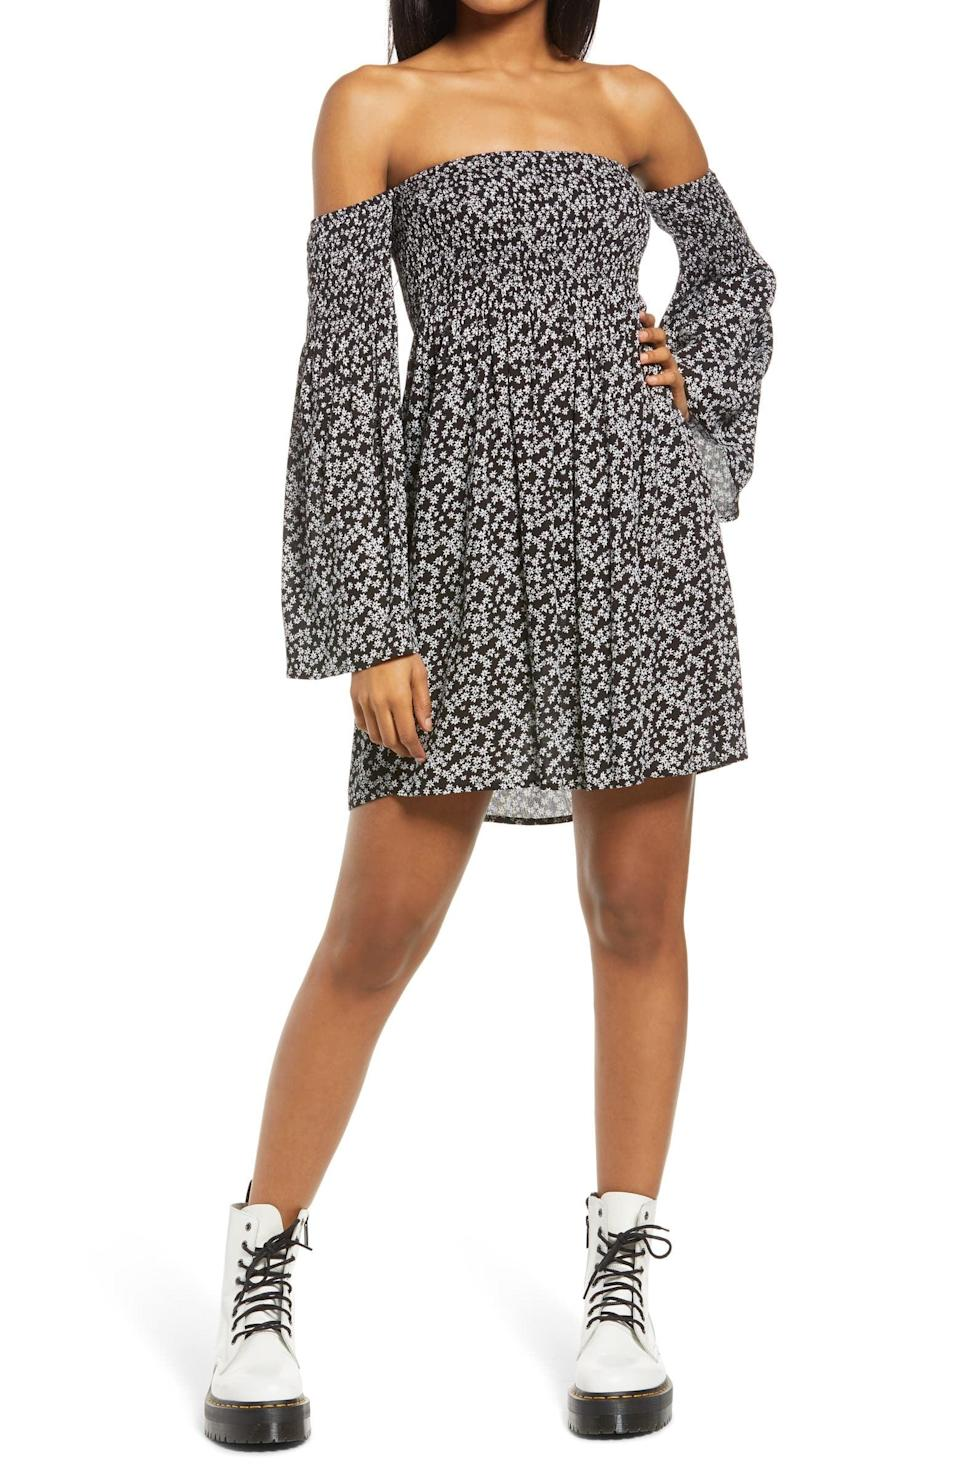 <p>You'll feel light and easygoing in this playful <span>Lulus Smocked Off the Shoulder Minidress</span> ($55).</p>